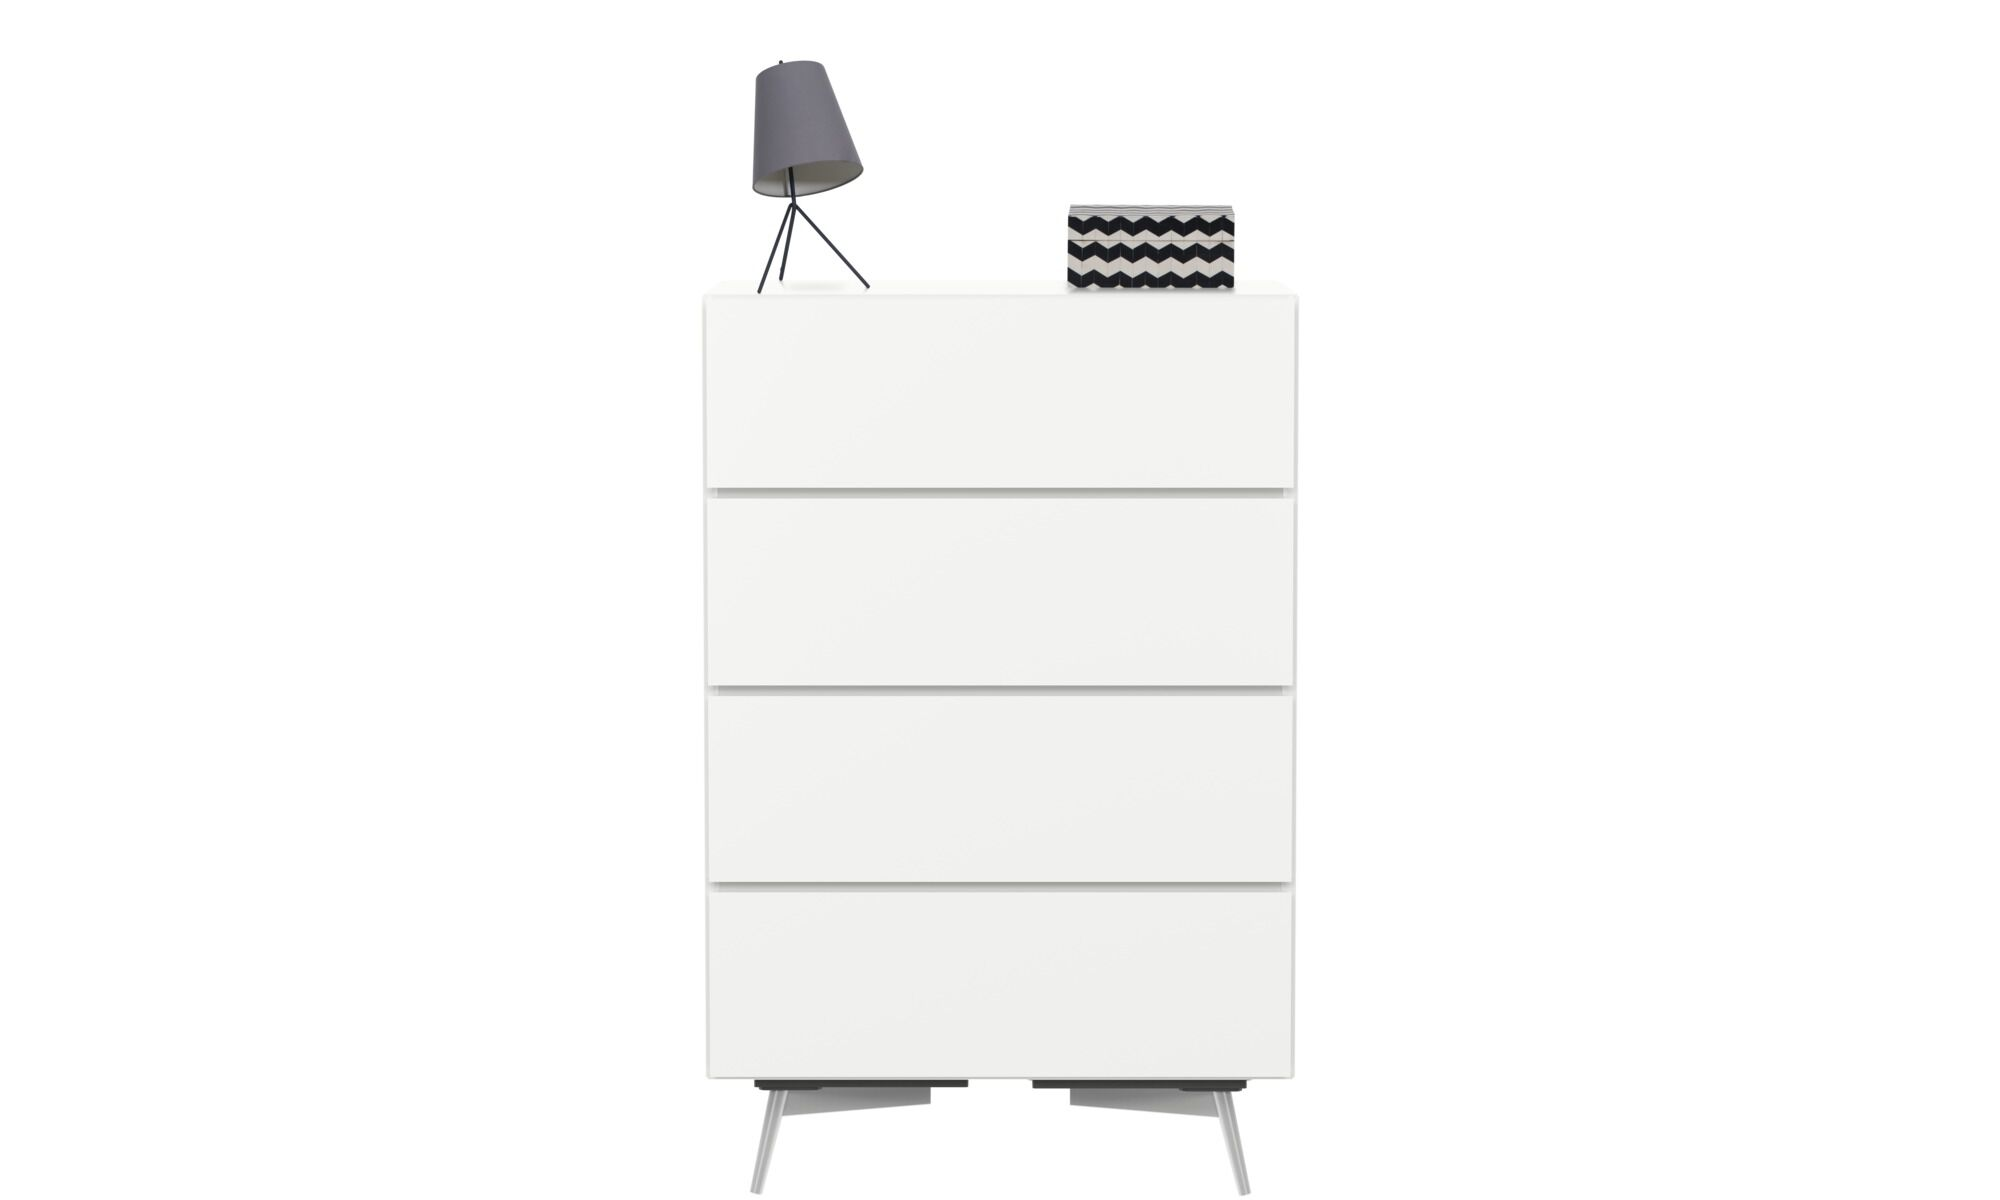 Oak Trendy White Desk Concepts Chests of drawers - Lugano chest - White - Lacquered